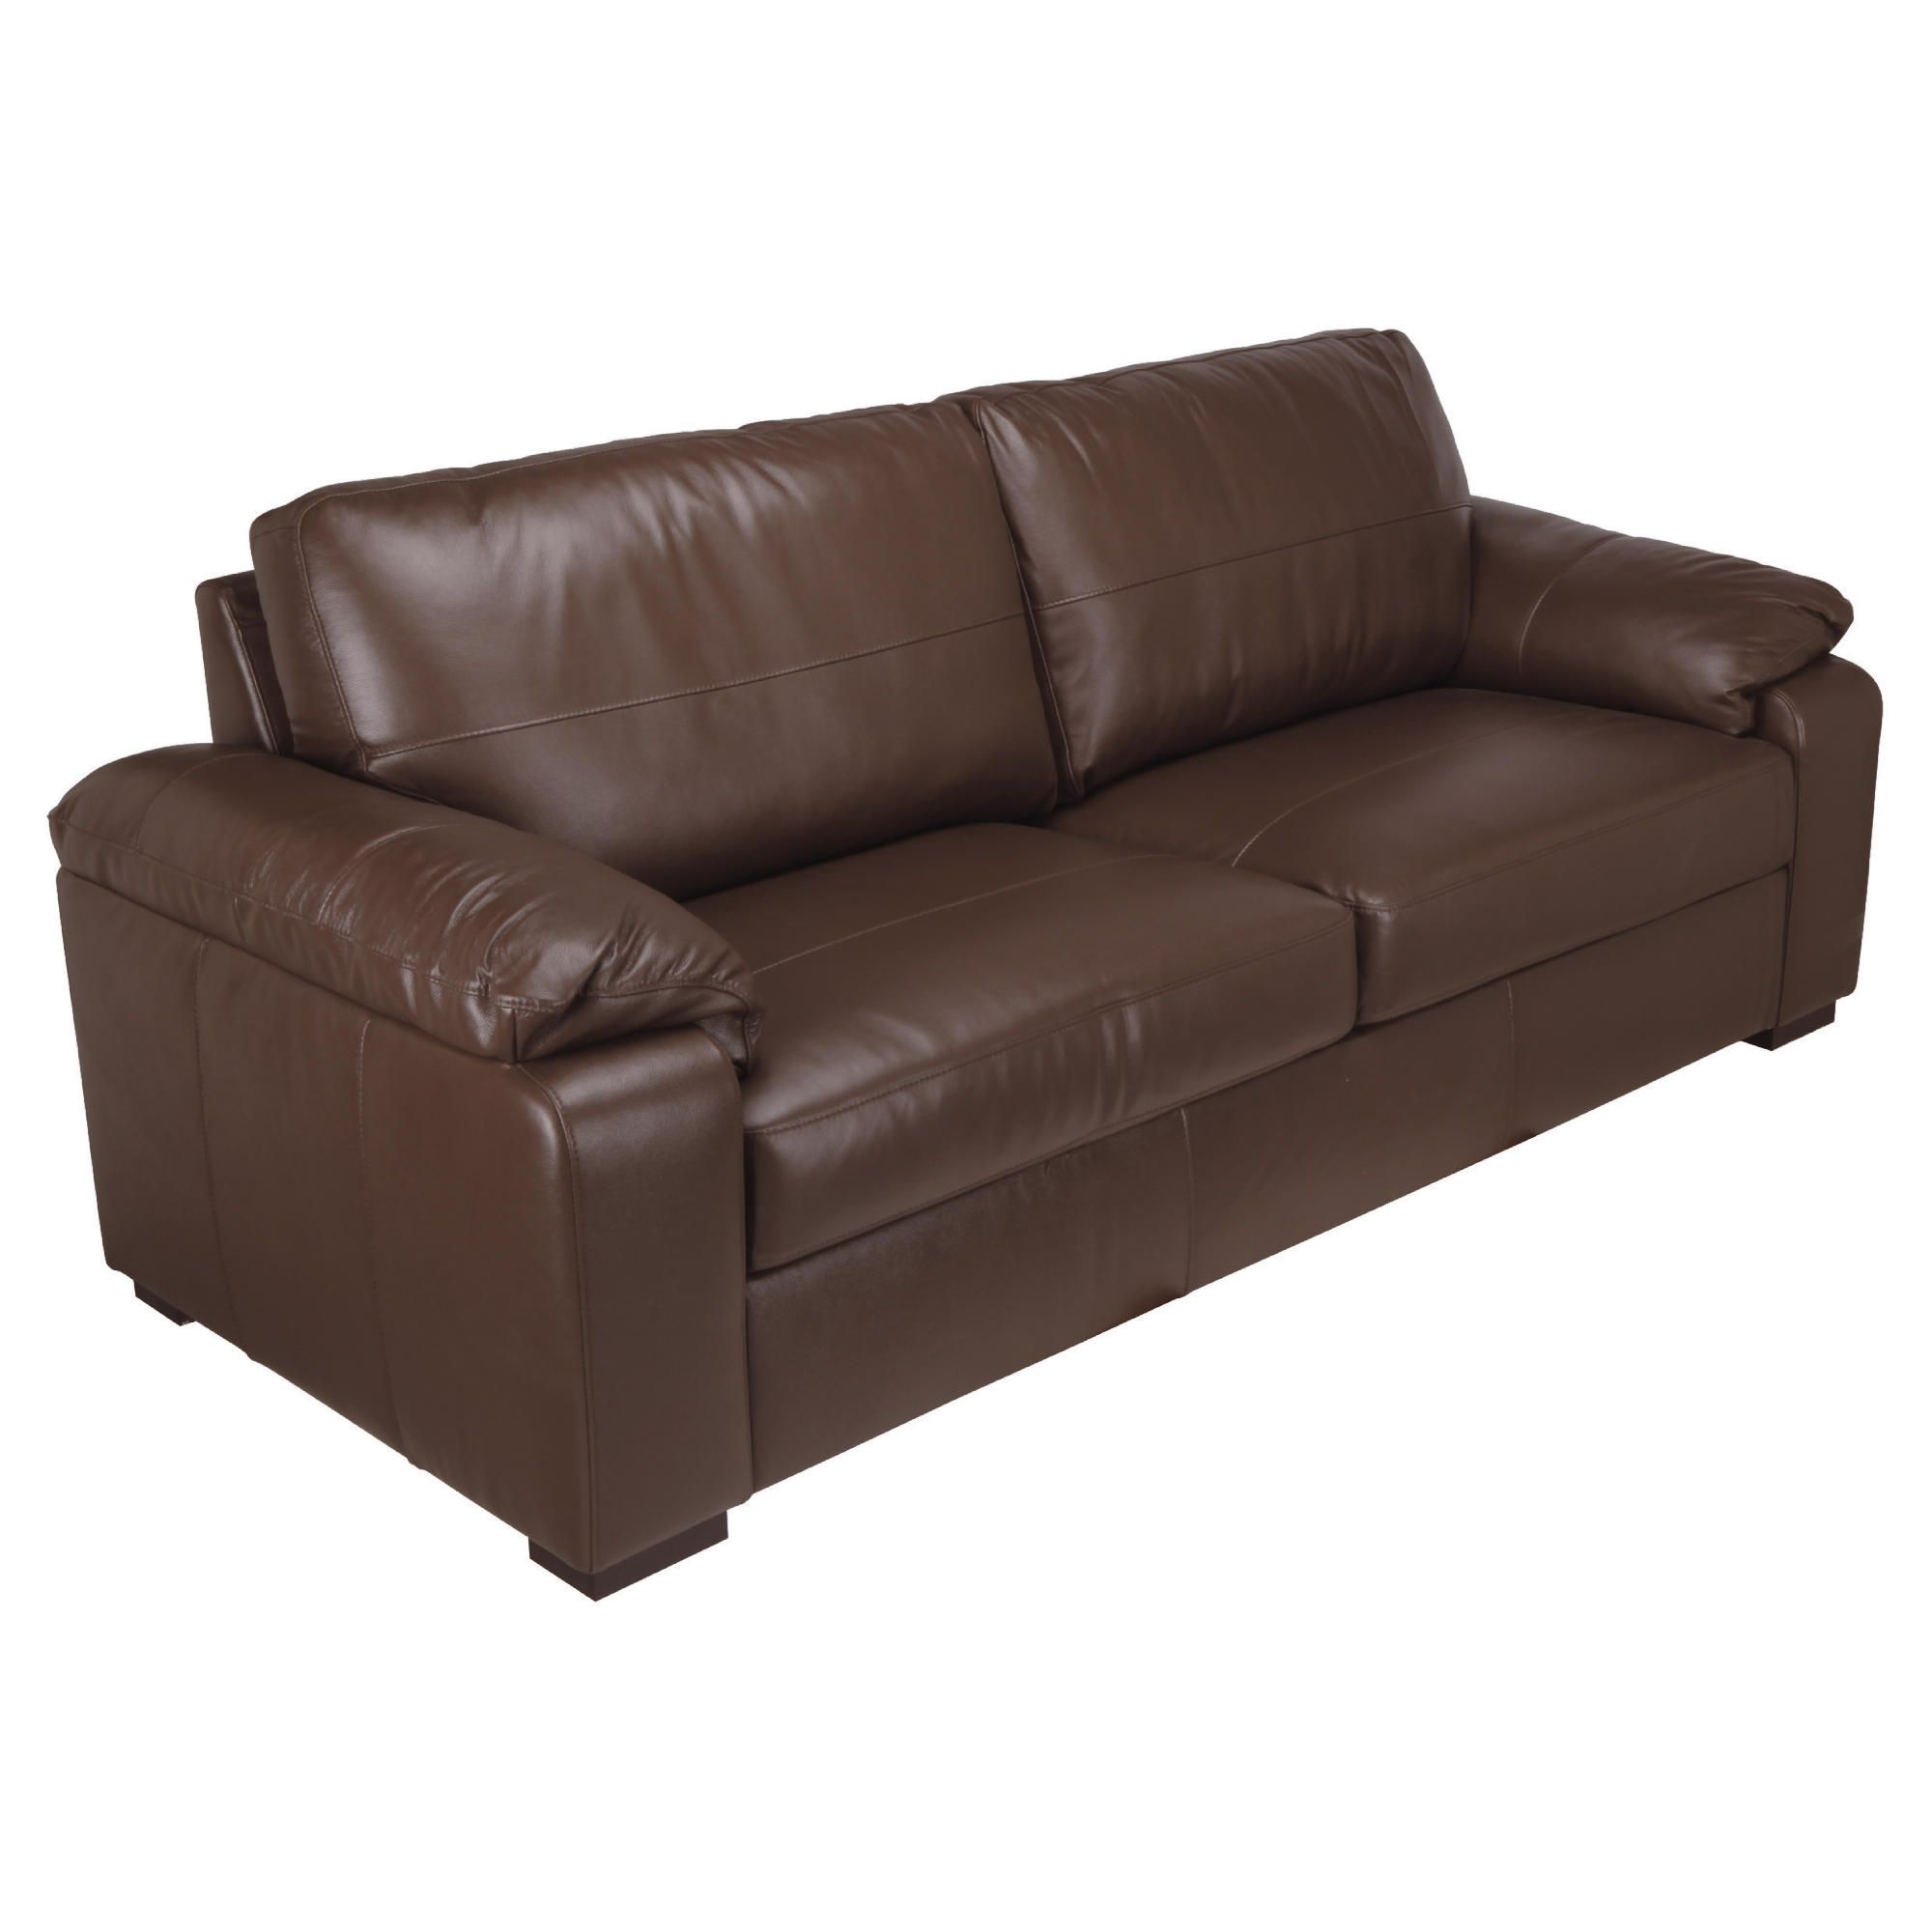 Ashmore Large Leather Sofa, Brown at Tesco Direct